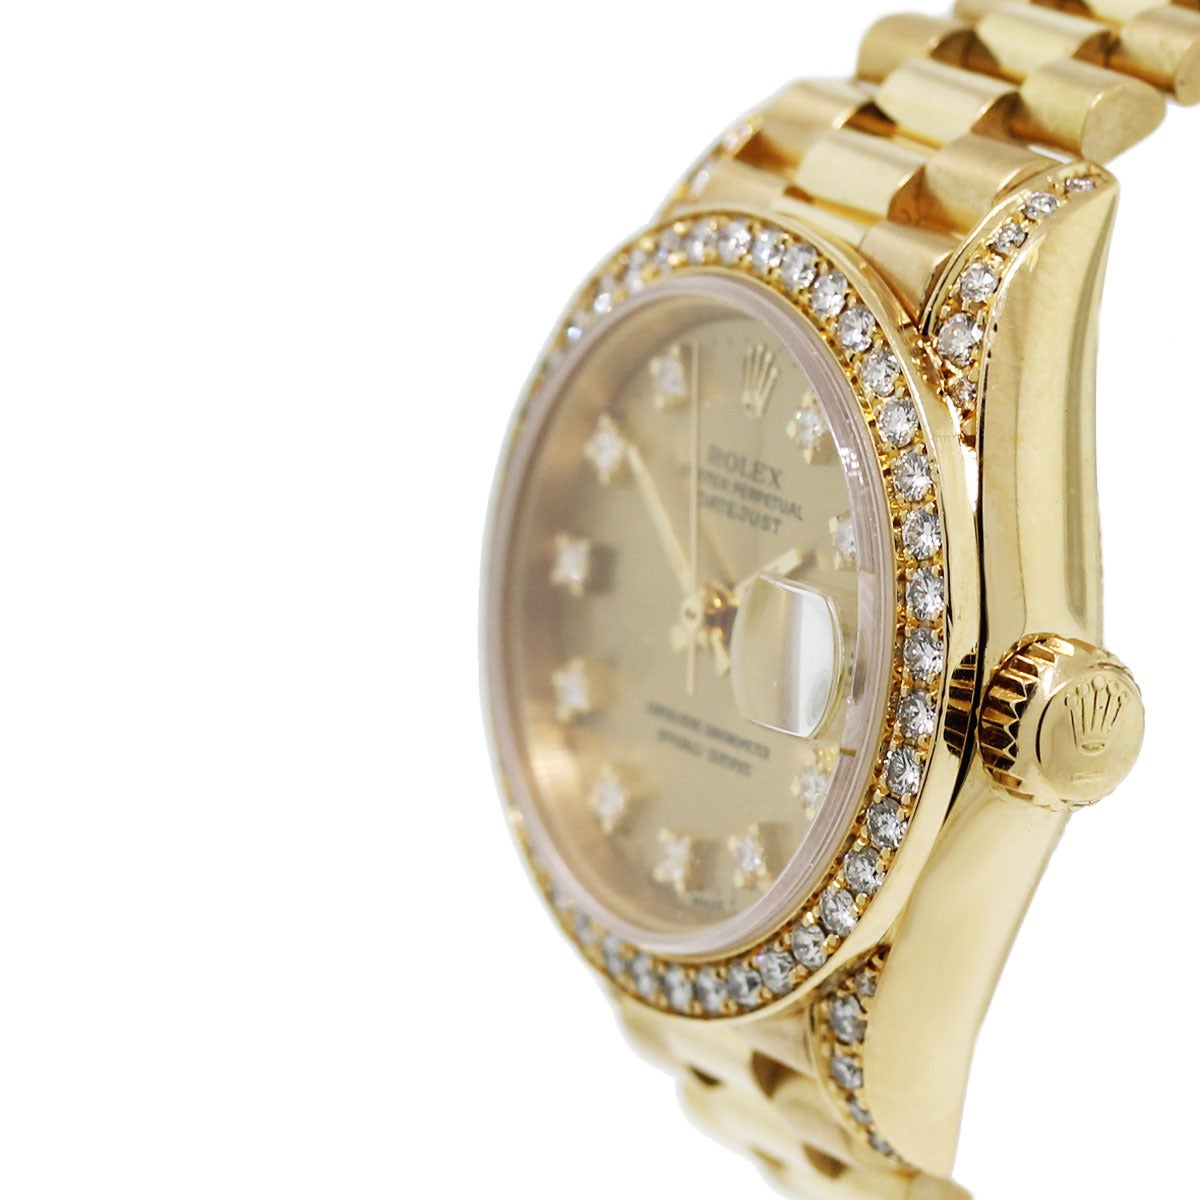 Rolex Lady's Yellow Gold Oyster Datejust Presidential Diamond Watch Ref 69158 3